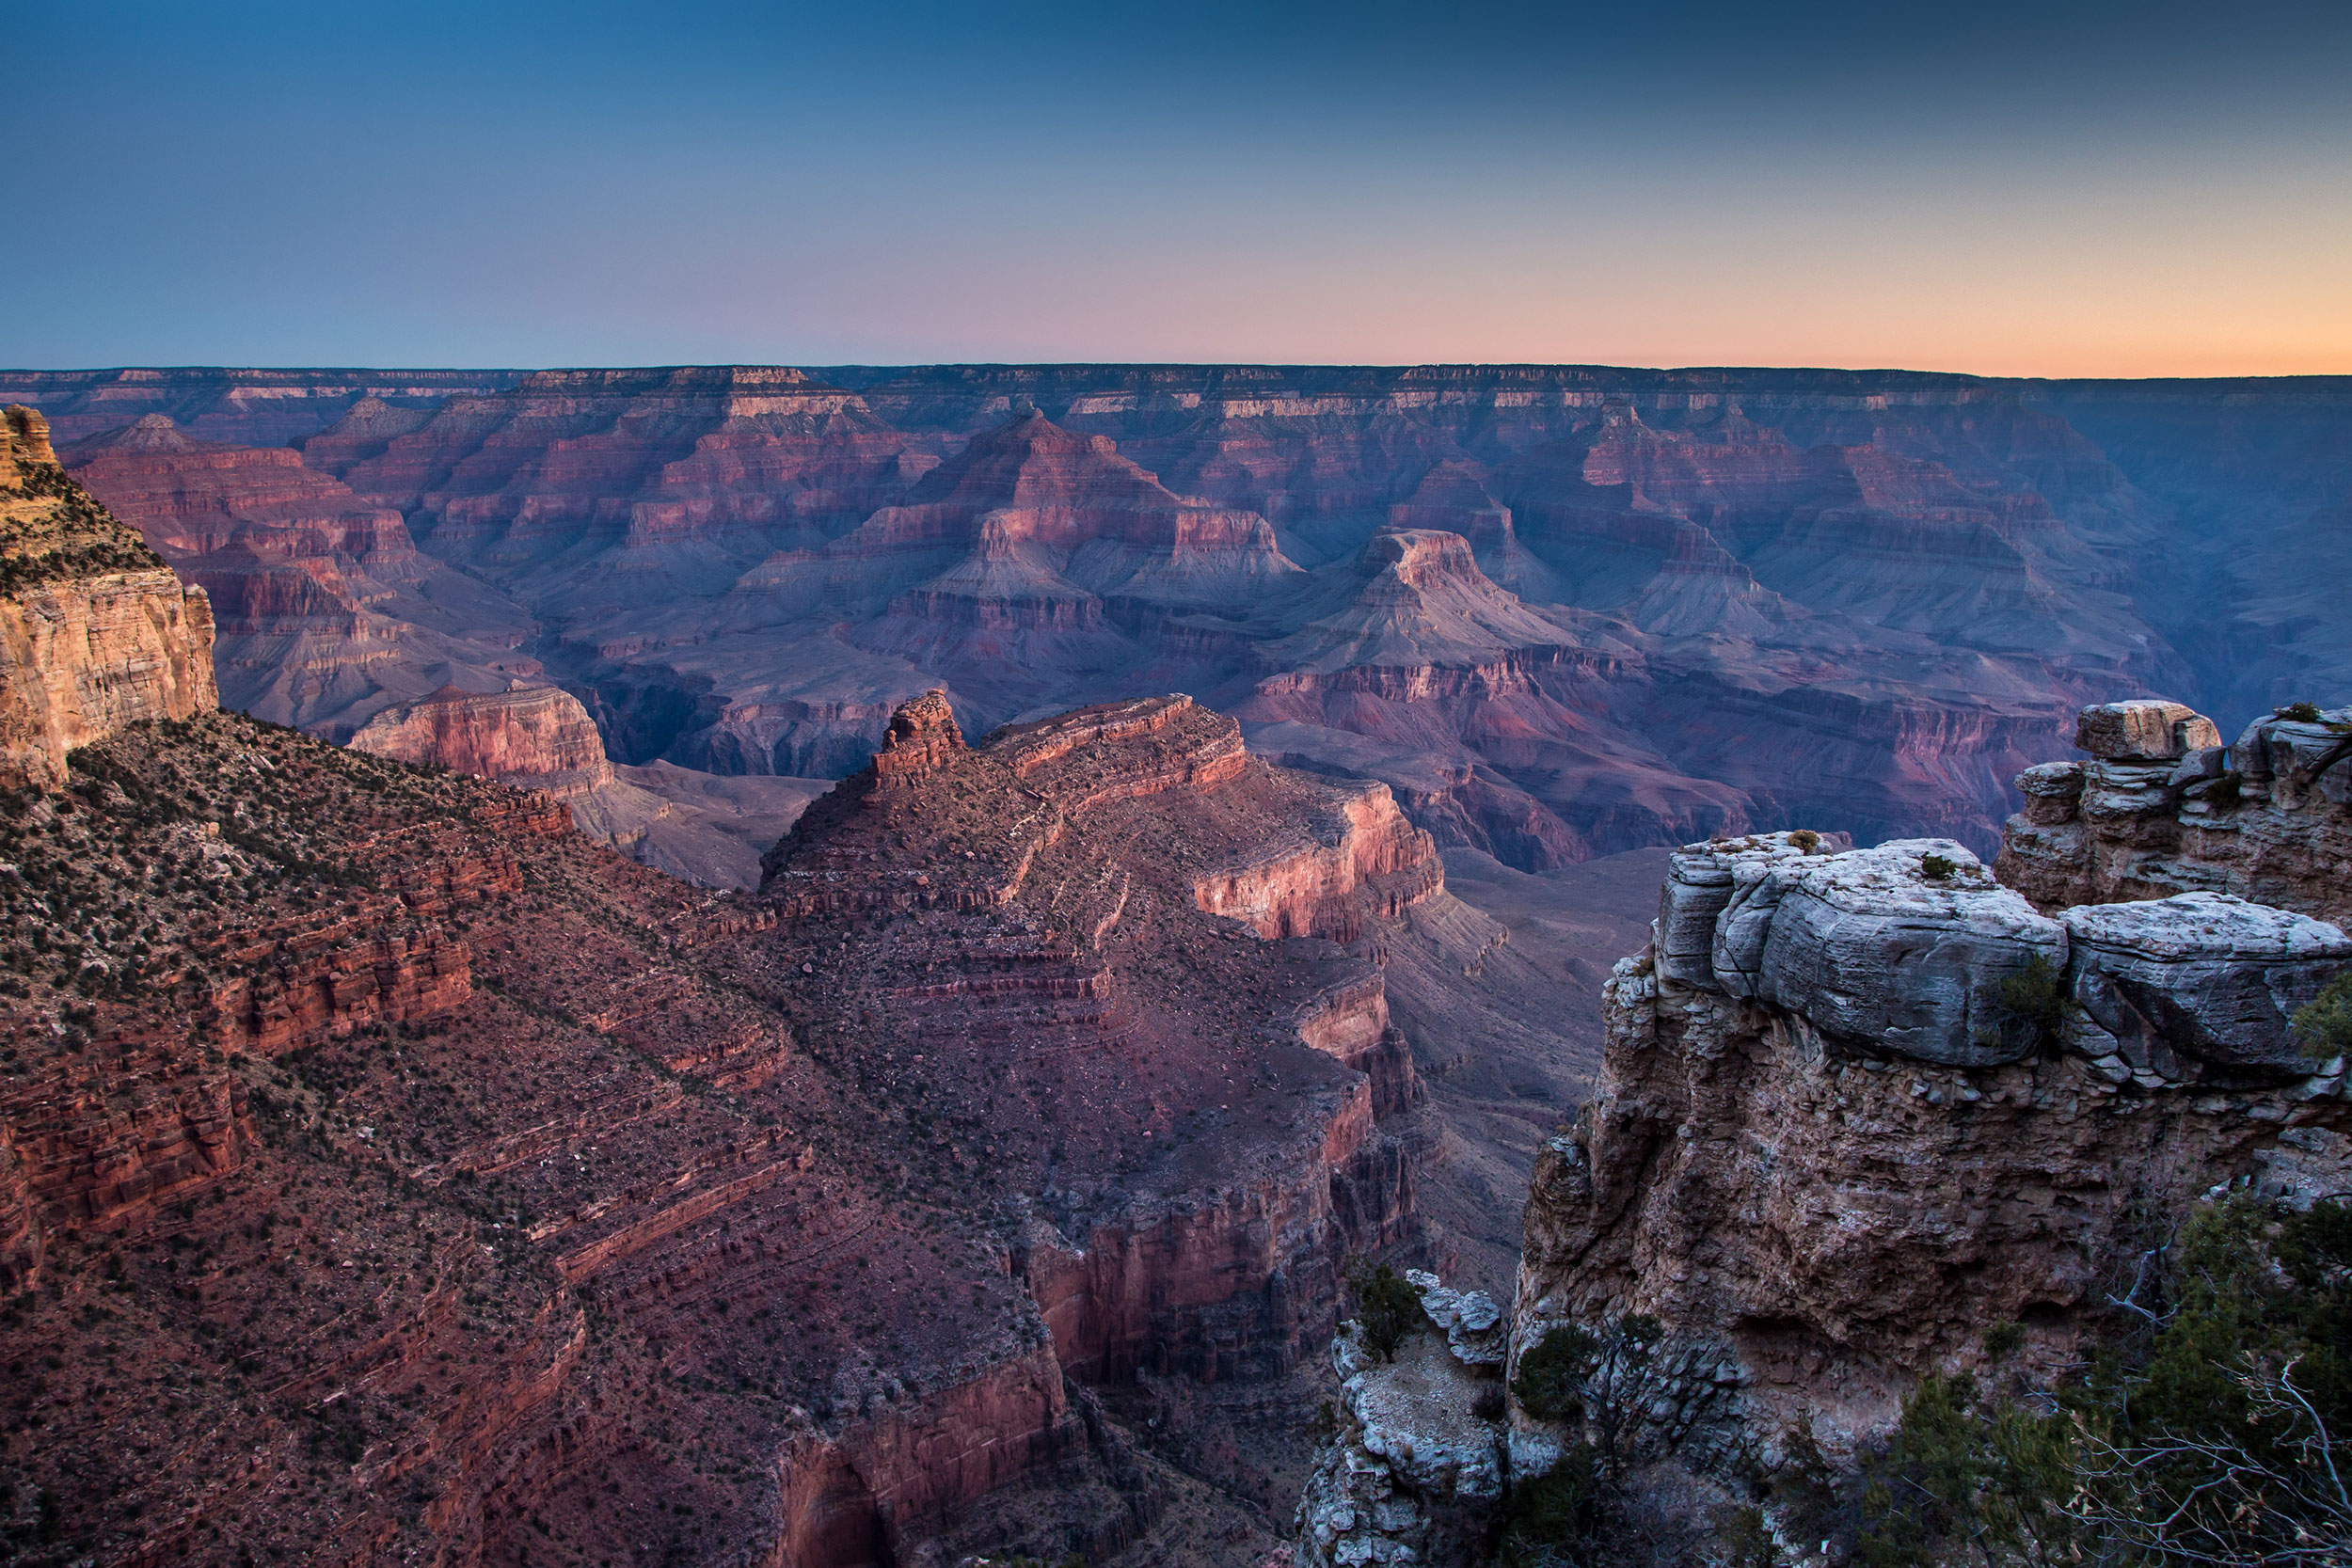 A hiker died after a fall at the Grand Canyon